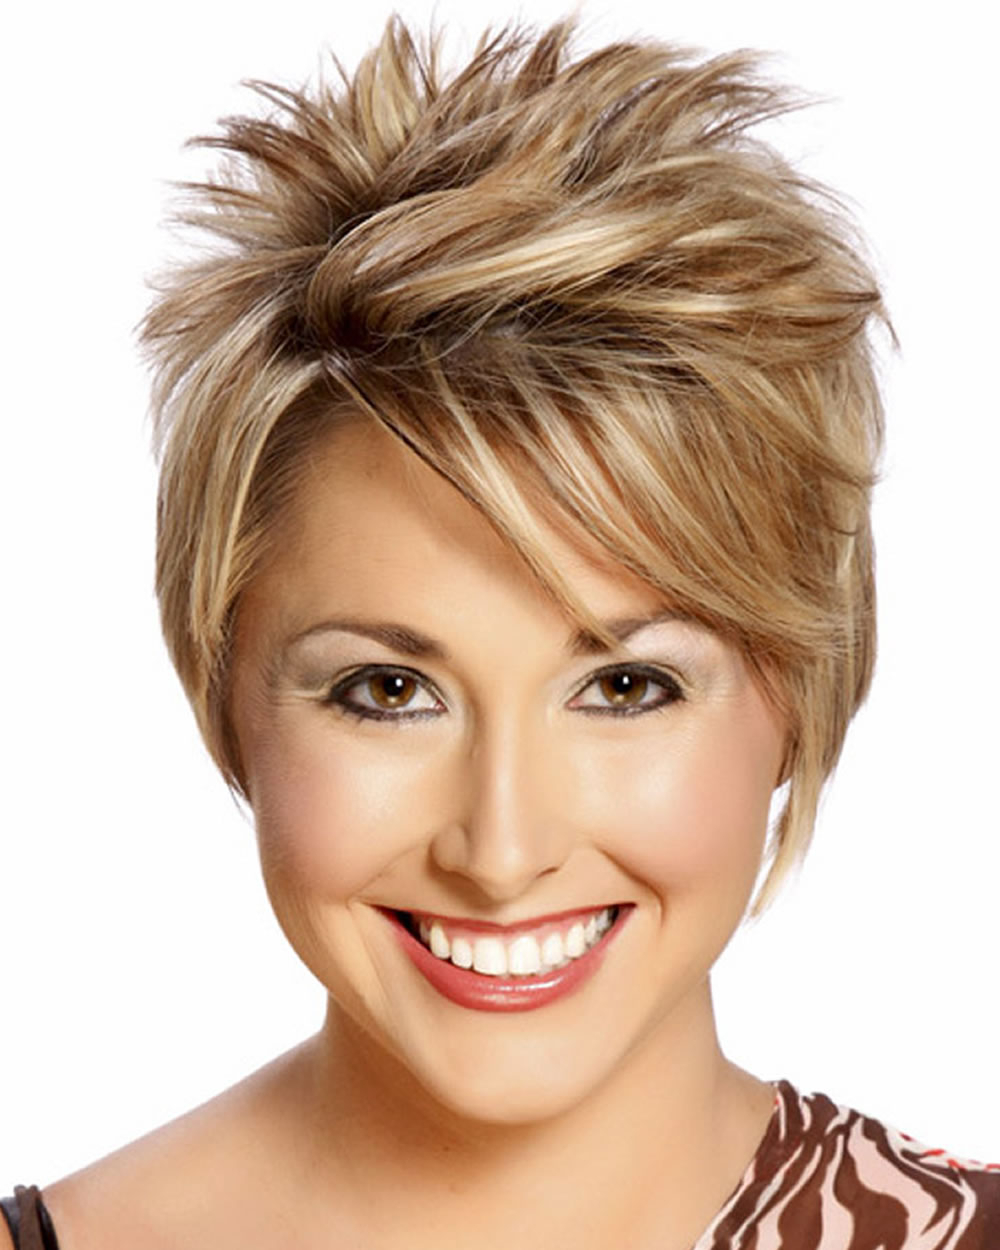 Short Spiky Haircuts & Hairstyles For Women 2018 – Hairstyles For Short Spiked Haircuts (View 14 of 20)